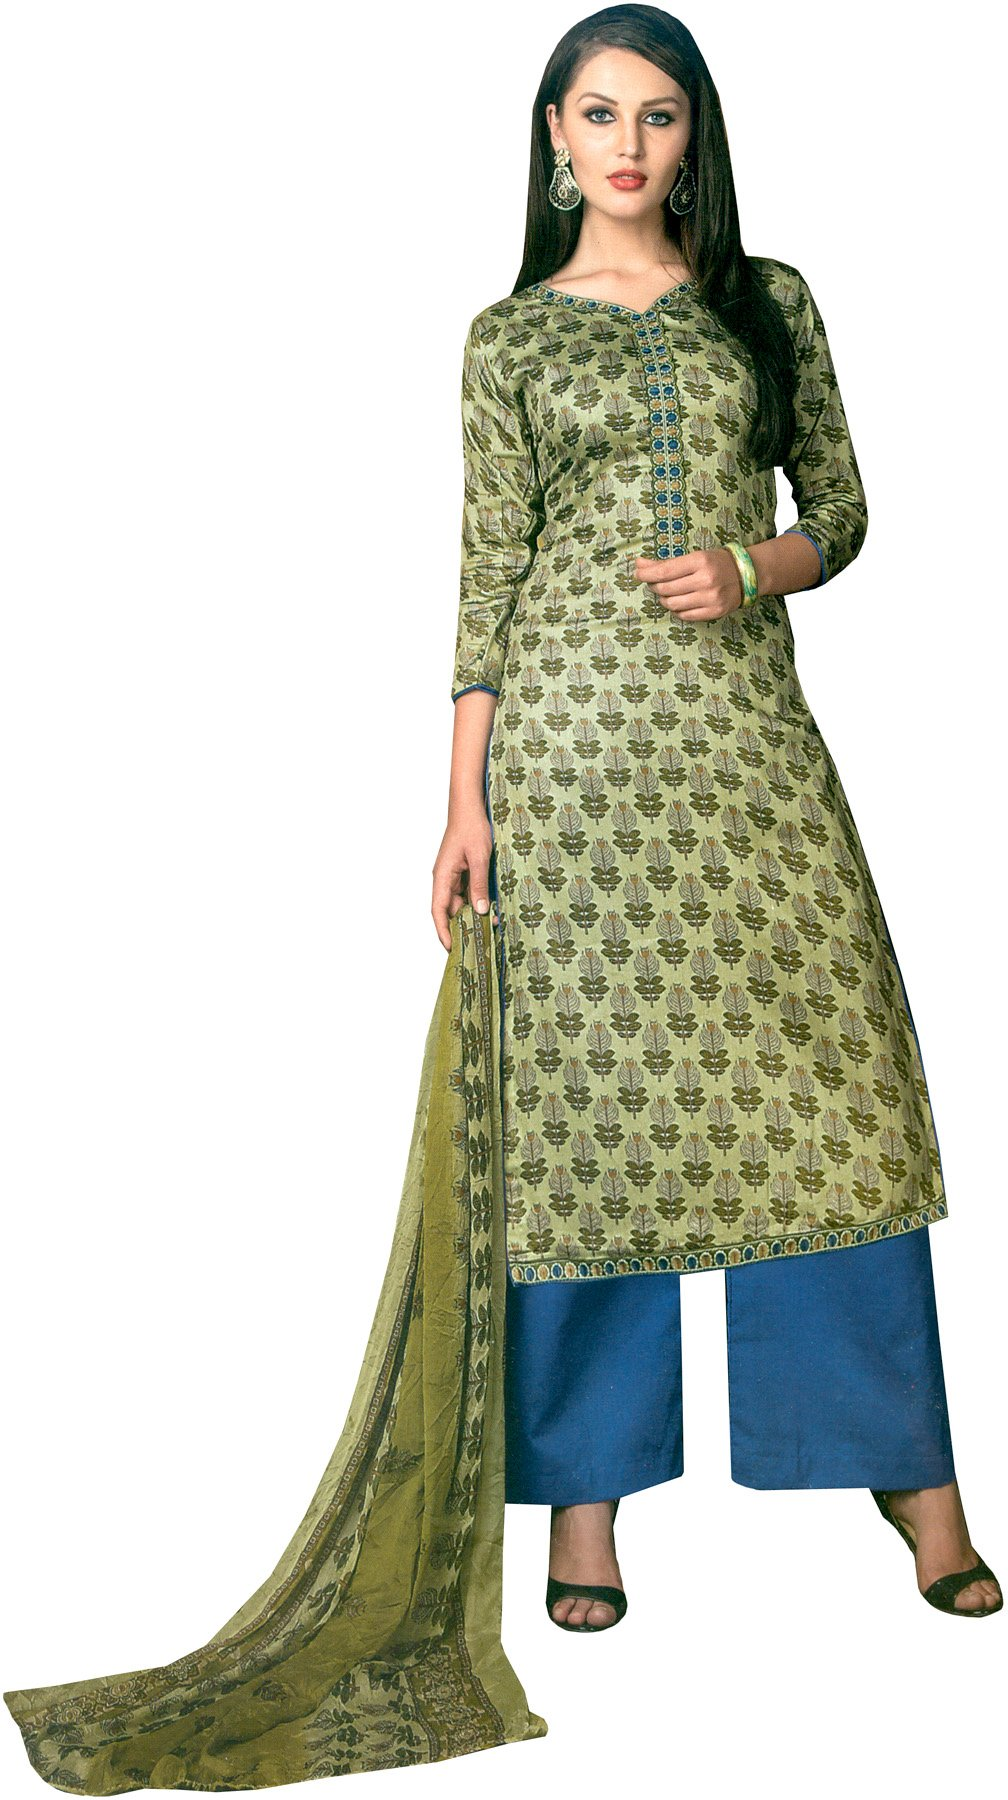 Green and blue printed palazzo salwar suit with